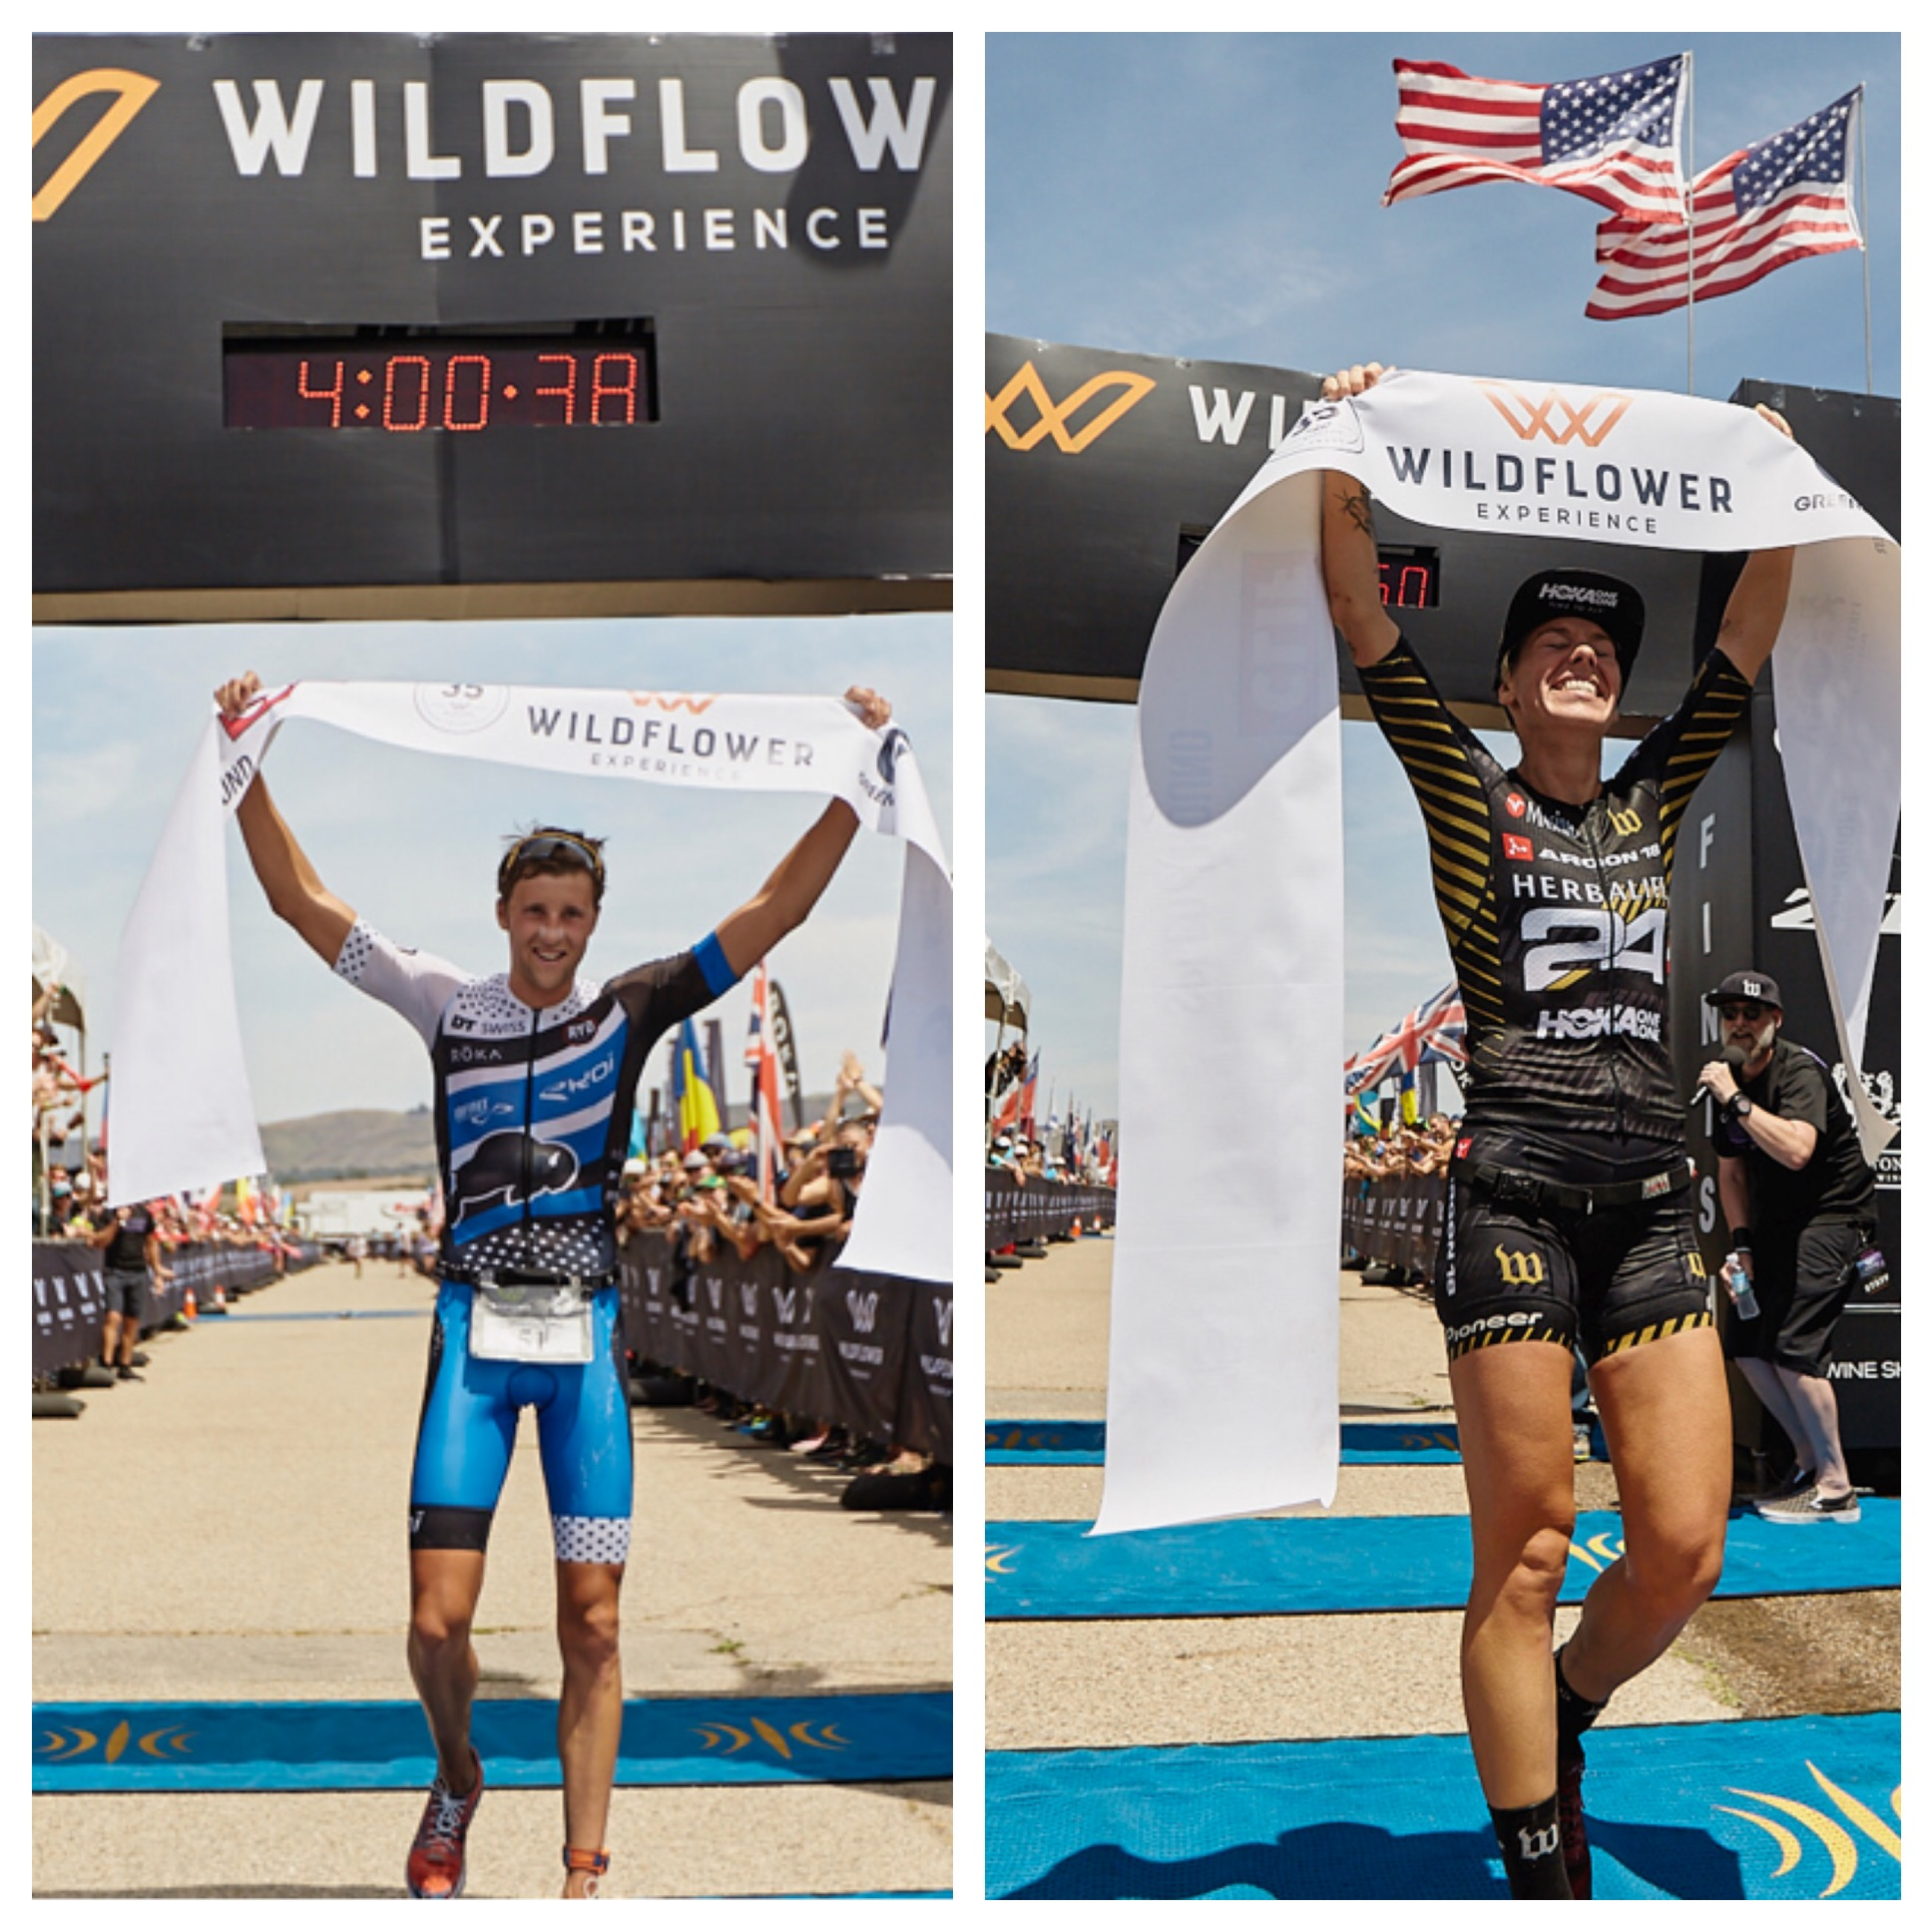 Rudy von Berg and Heather Jackson Win 2018 Wildflower Triathlon Experience Long Course Race